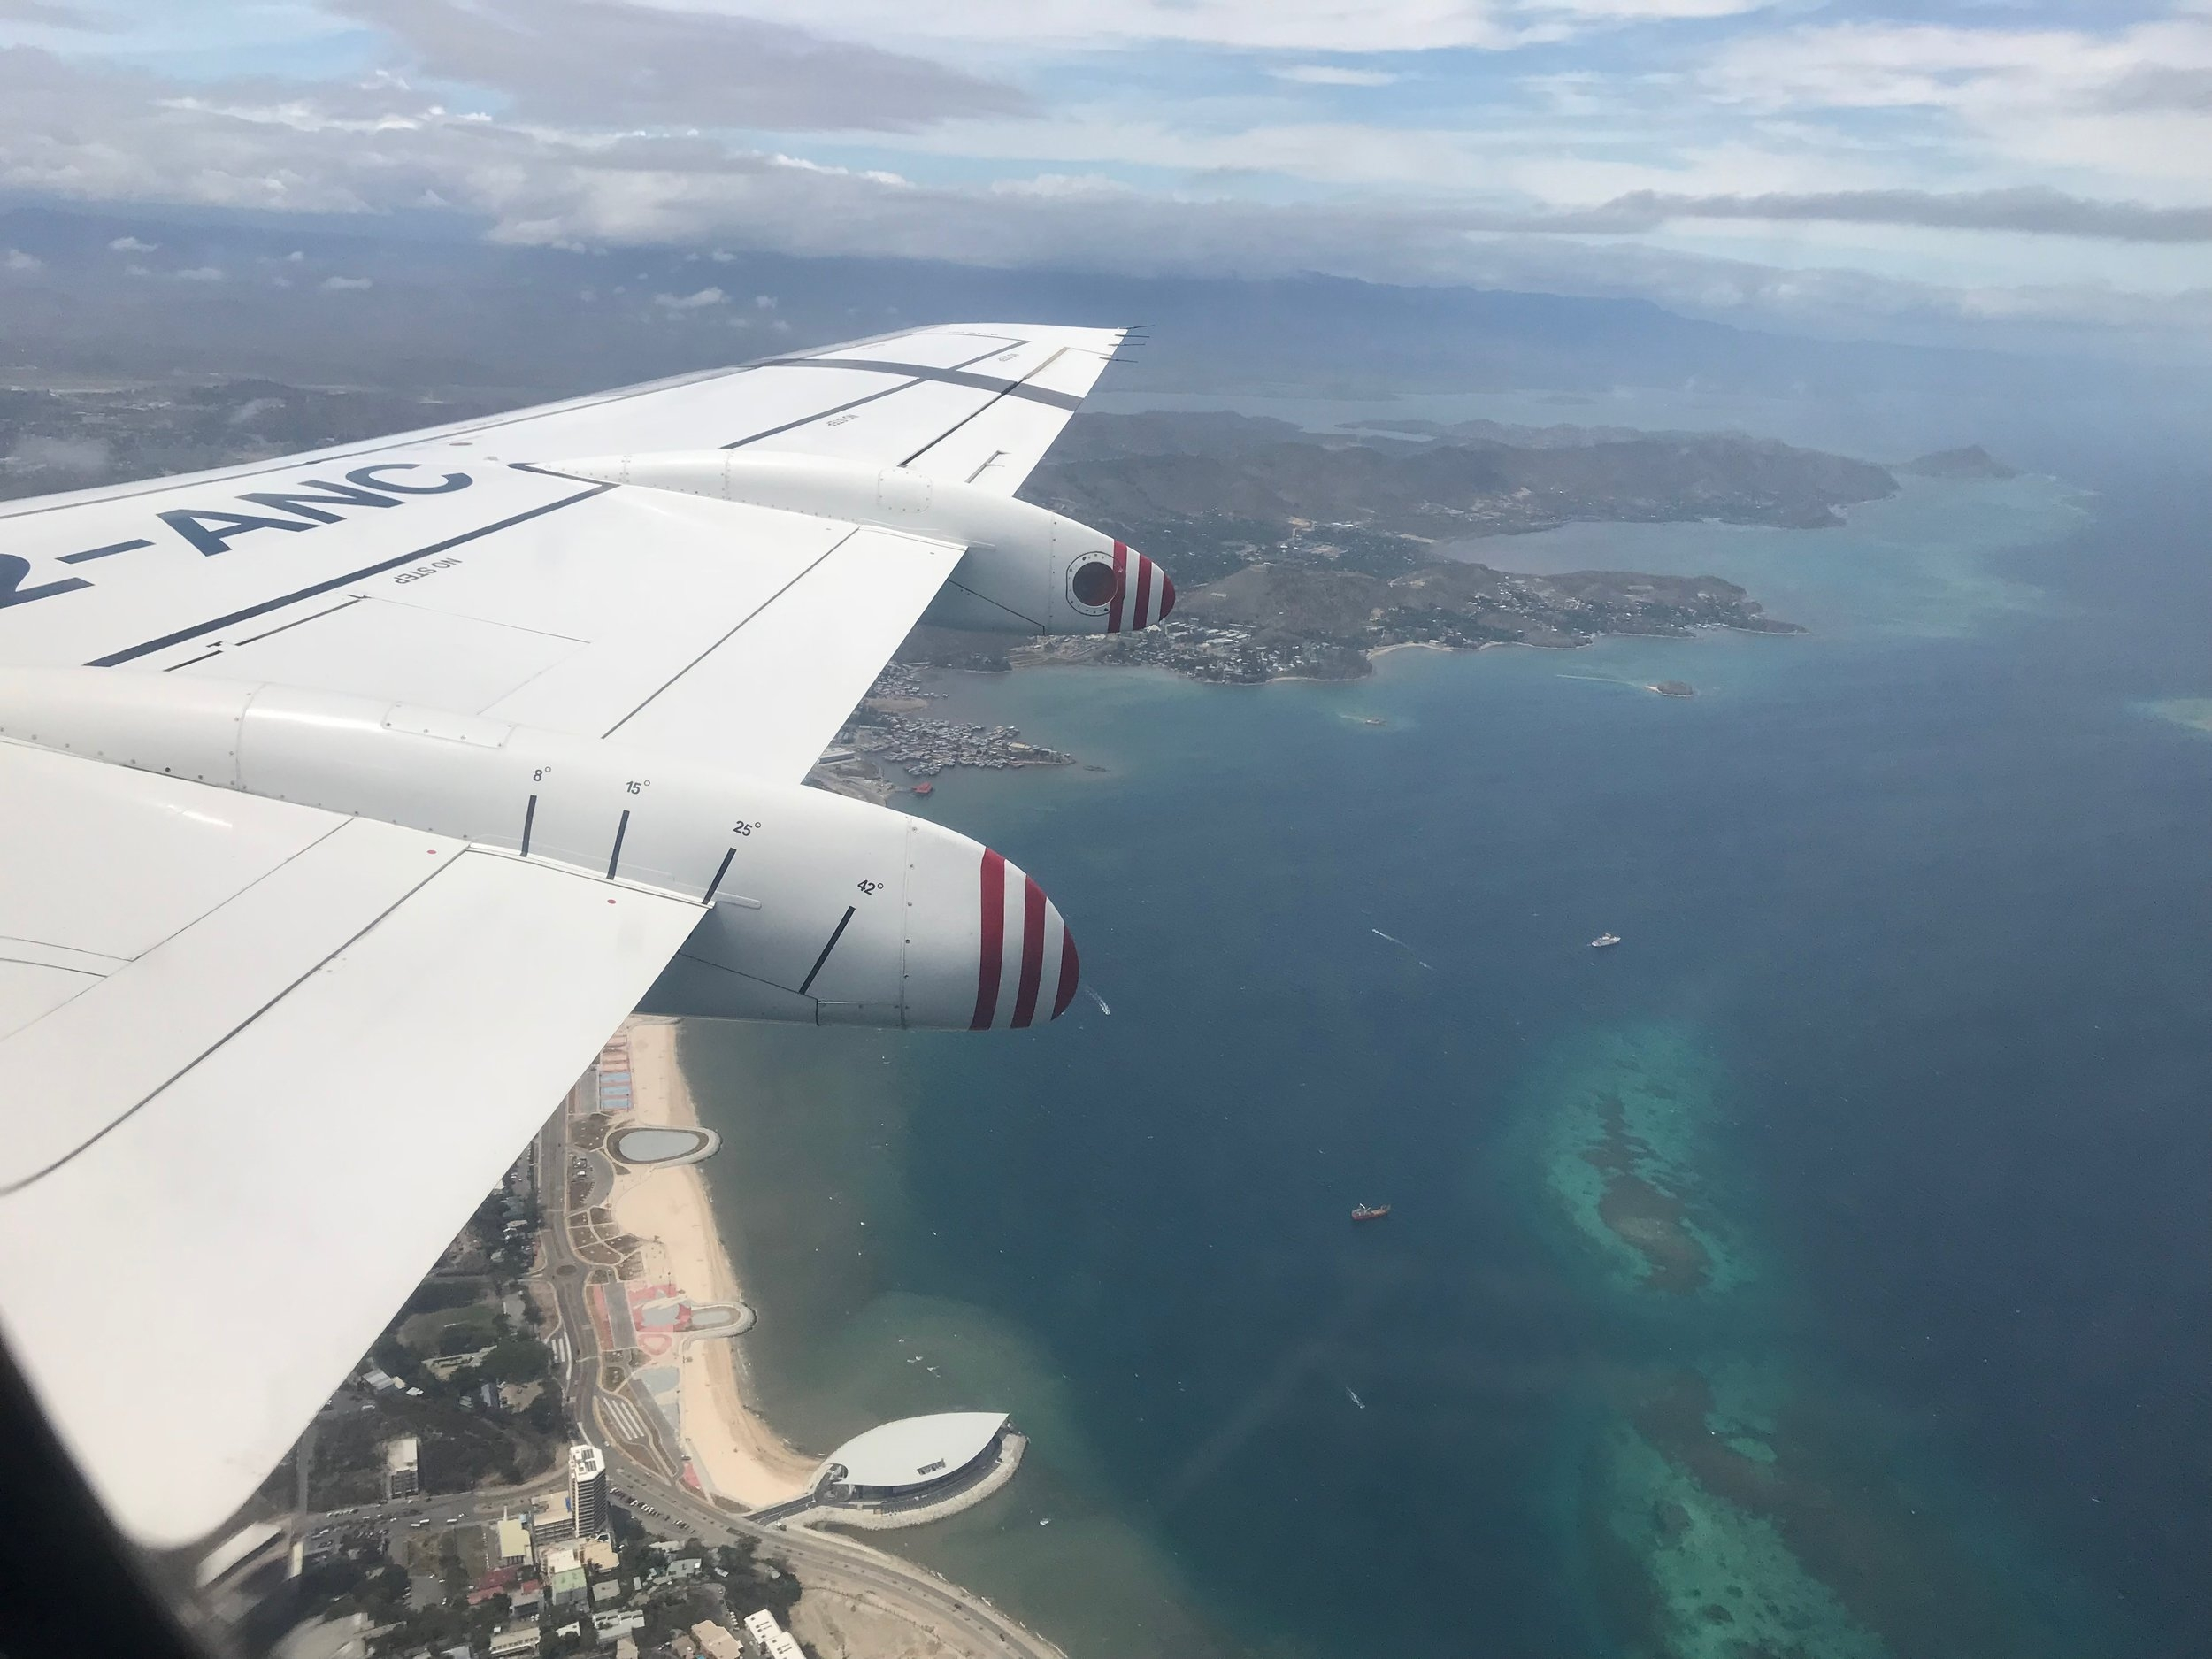 Flying into Port Moresby